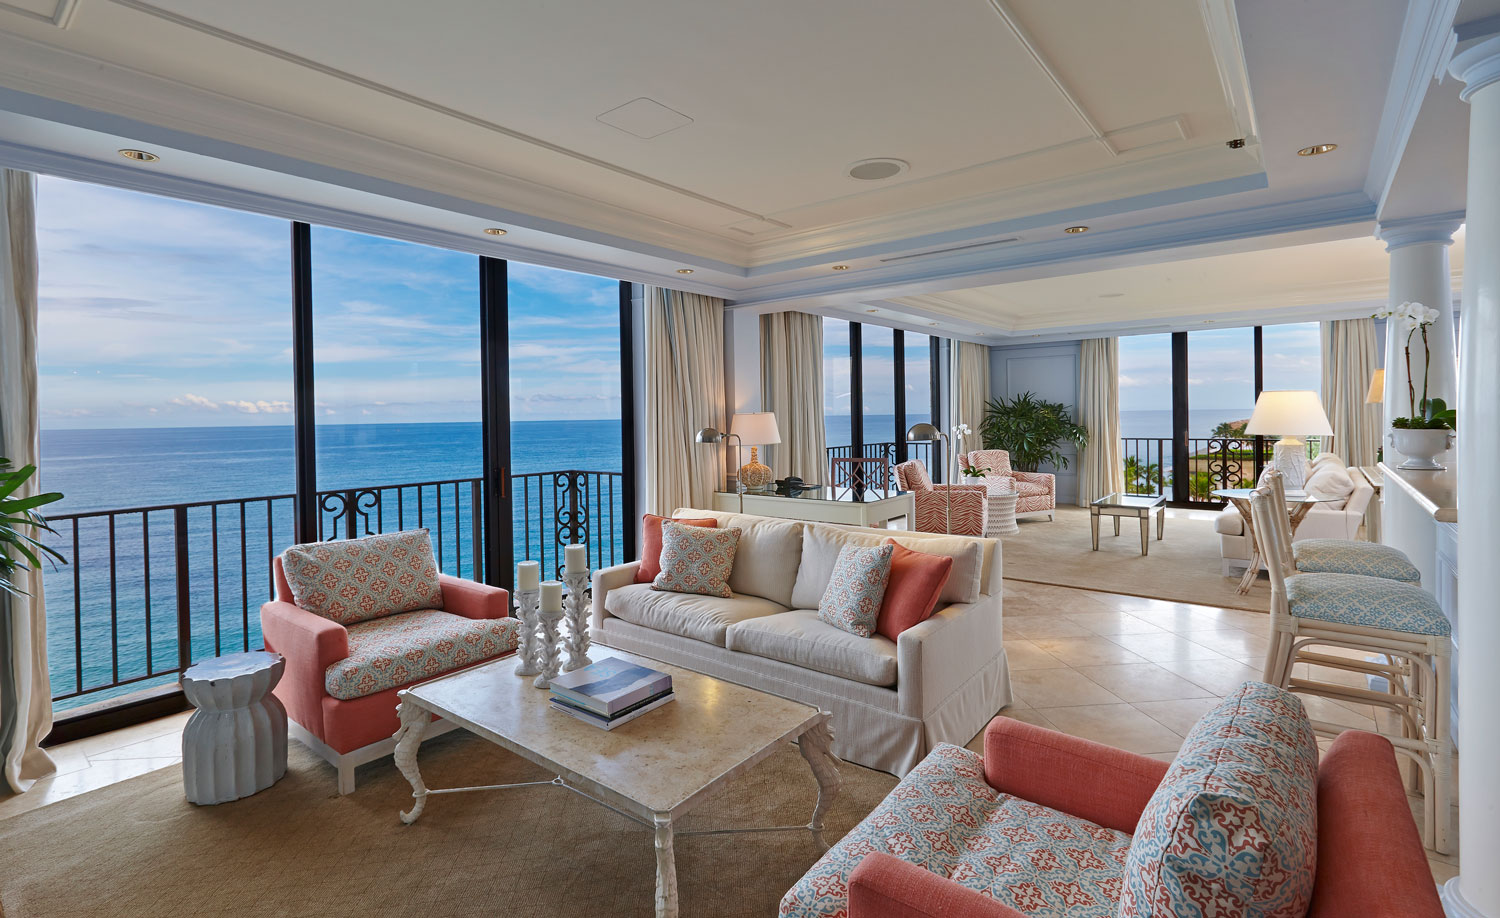 Imperial Suite at The Breakers ocean front view Florida palm beach honeymoon hotel ideas